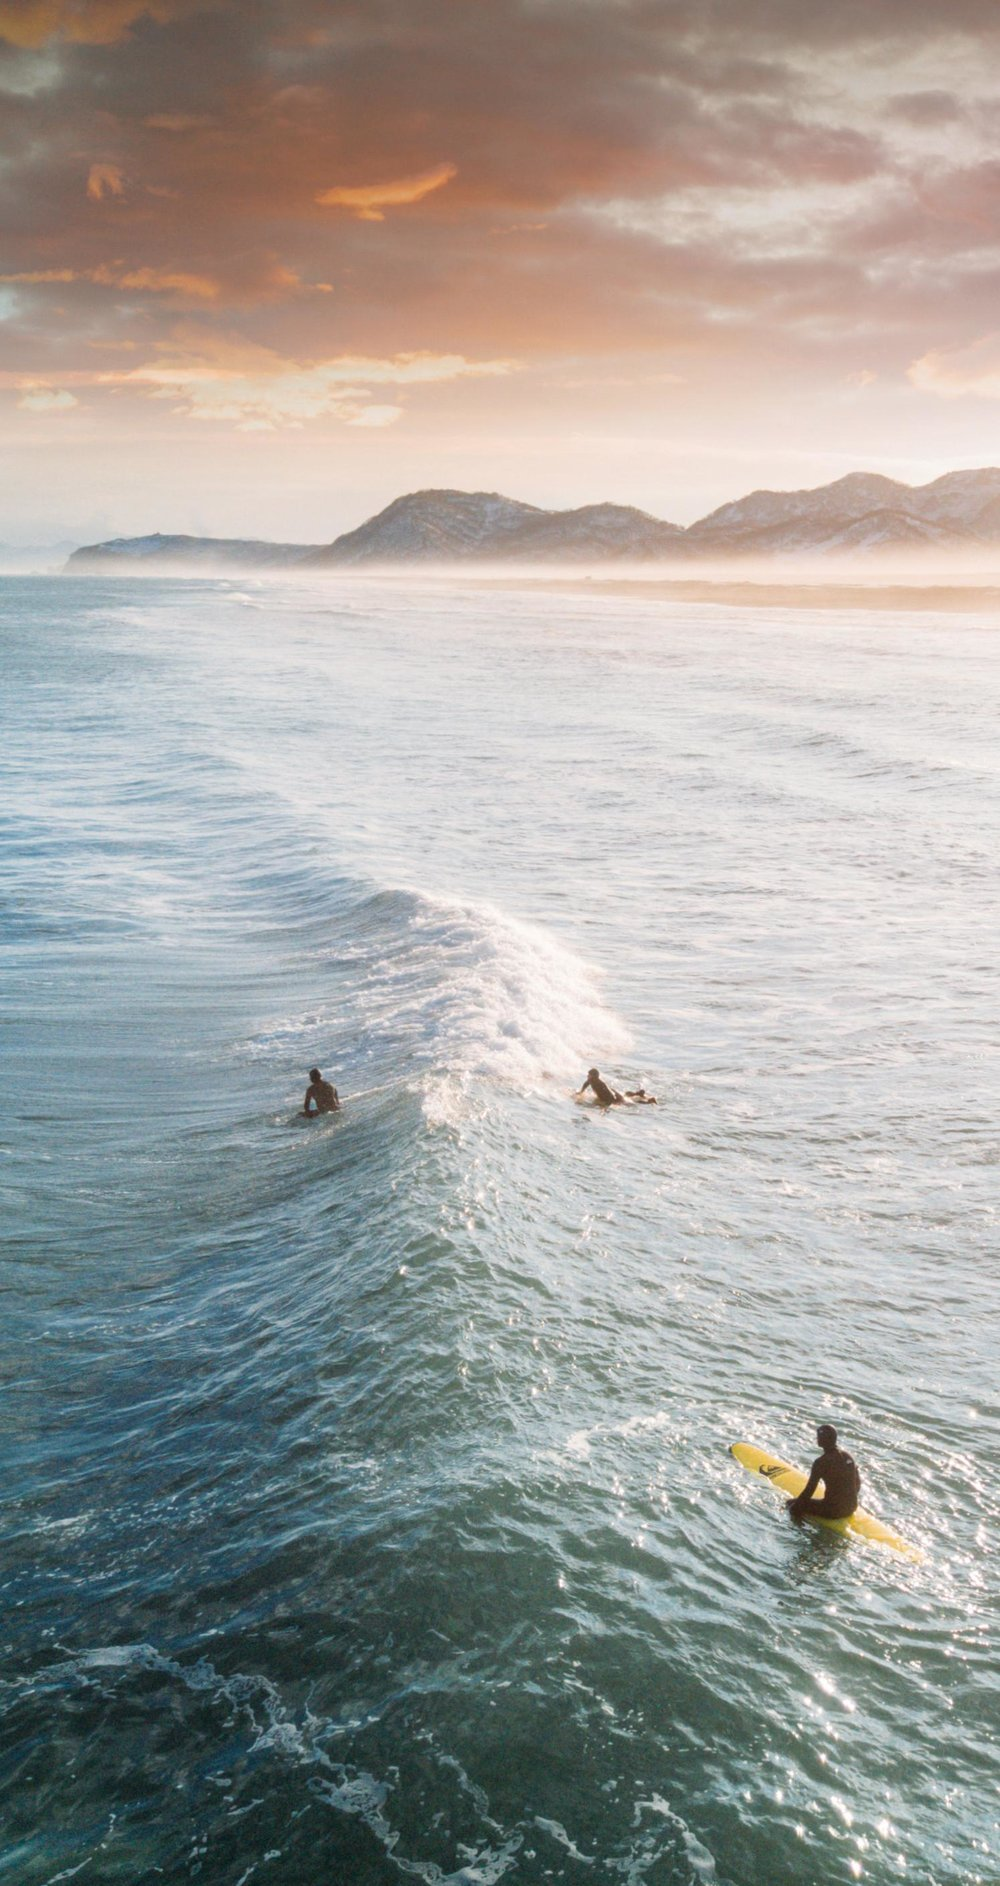 surfin at dawn pexels license https://www.pexels.com/photo/view-of-three-people-surfing-1553959/